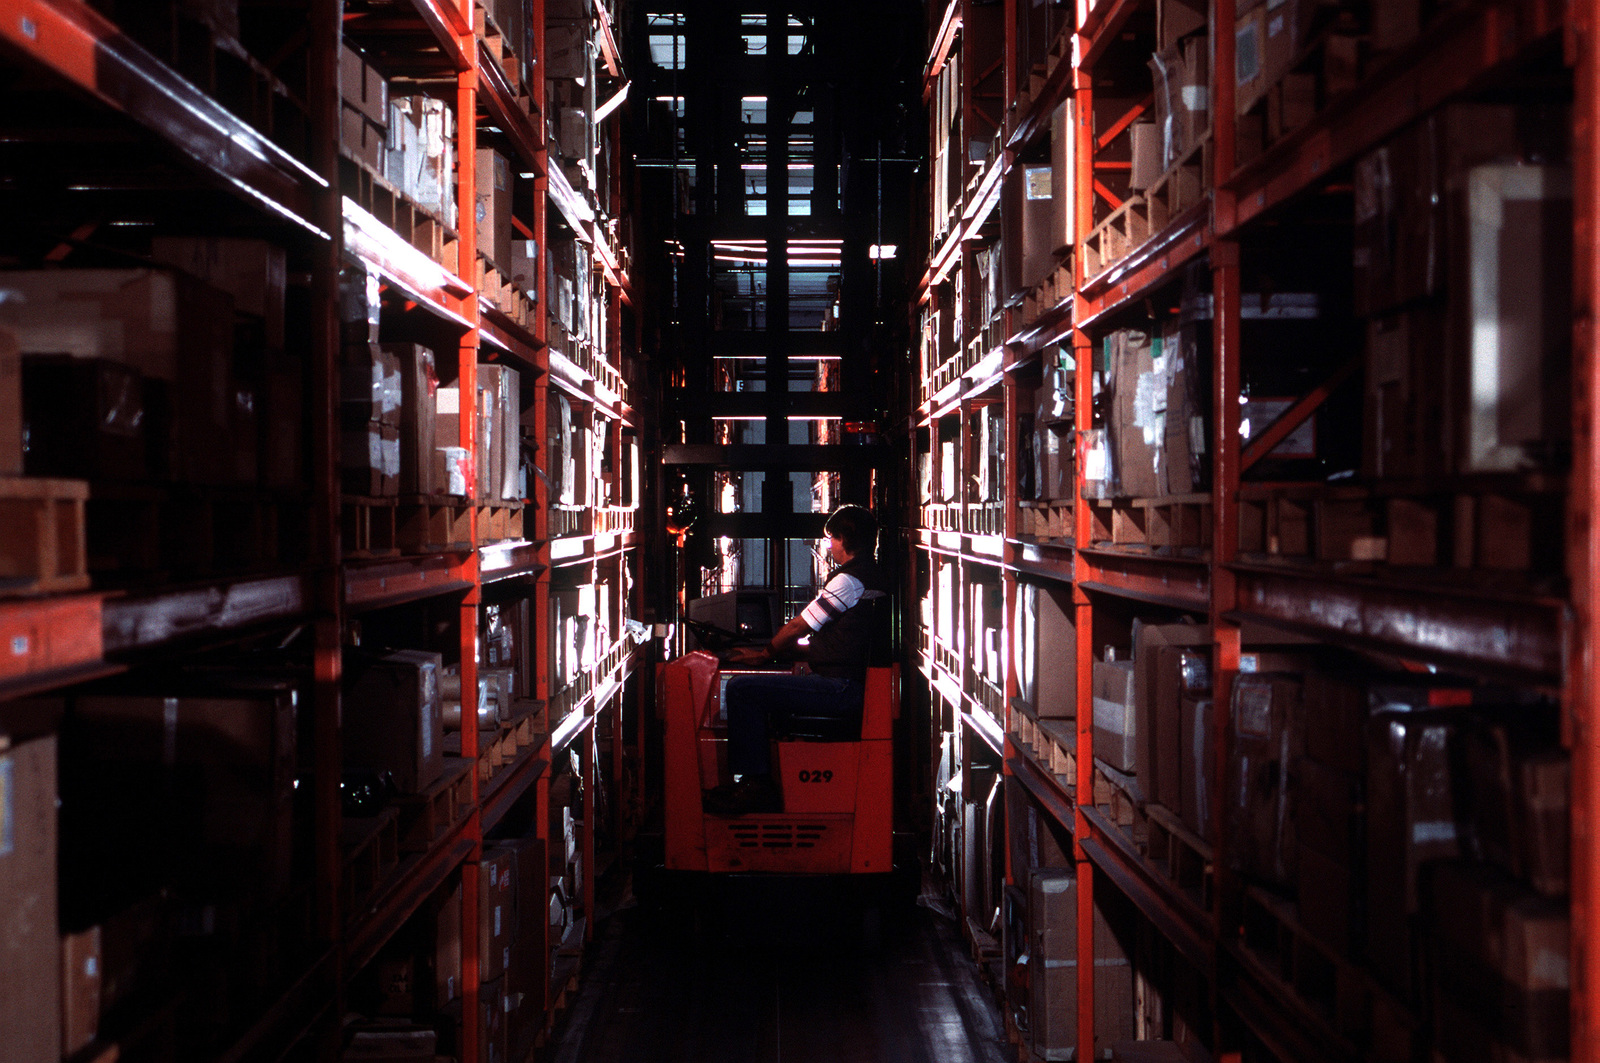 Gerald Graunstadt files and retrieves items in an automated warehouse using a computerized forklift. When positioned over wires in the floor, each forklift is able to determine its current position and move to the location of a desired item